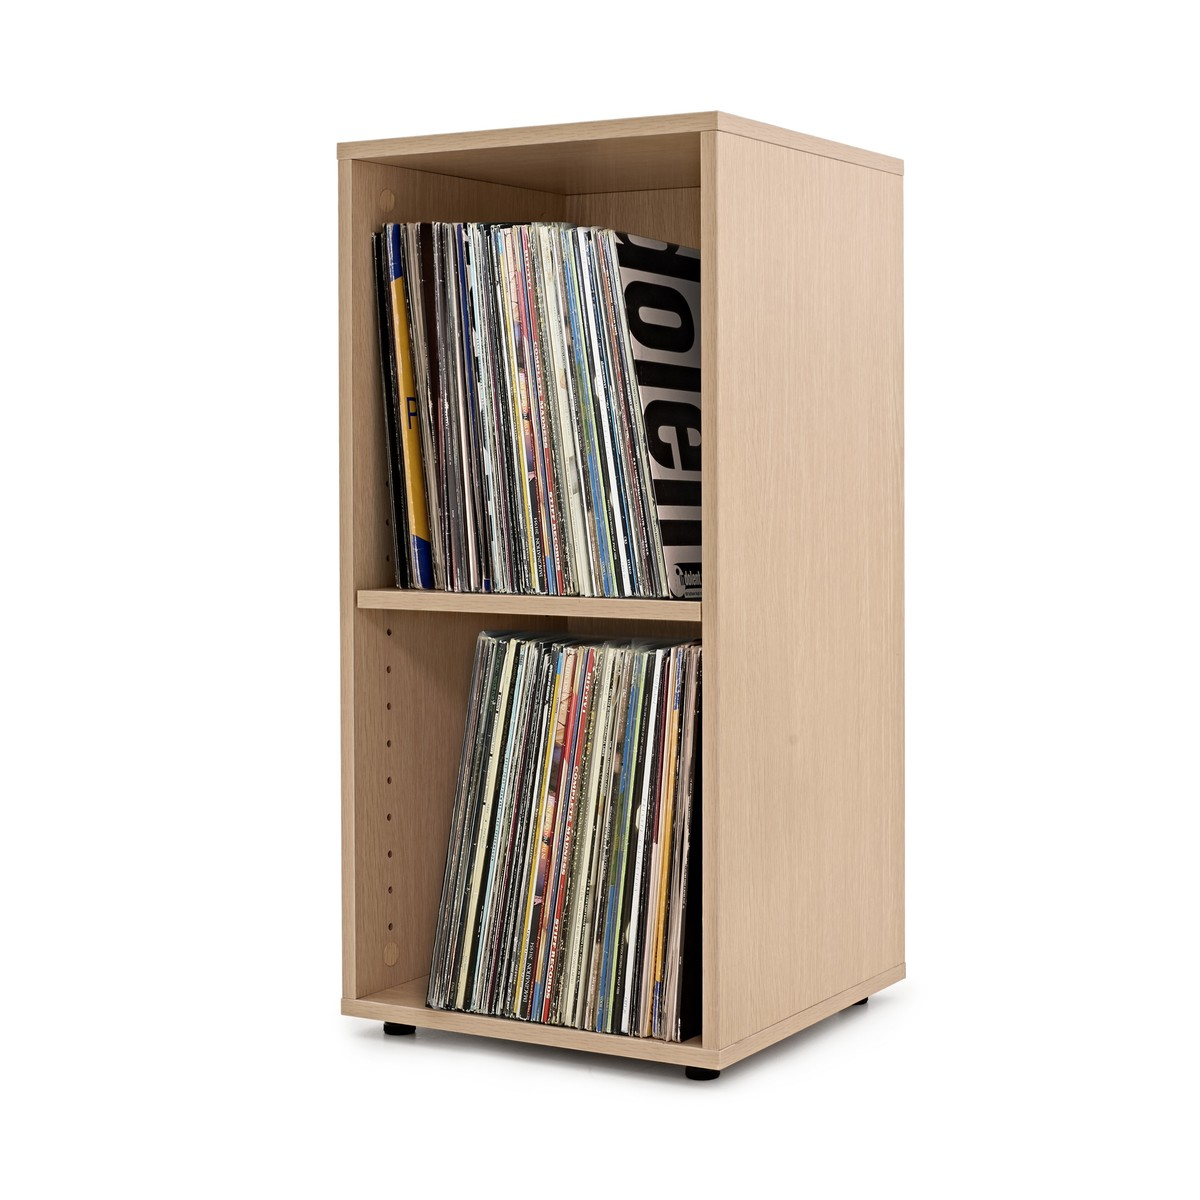 Picture of: Vinylopbevaring Gear4music